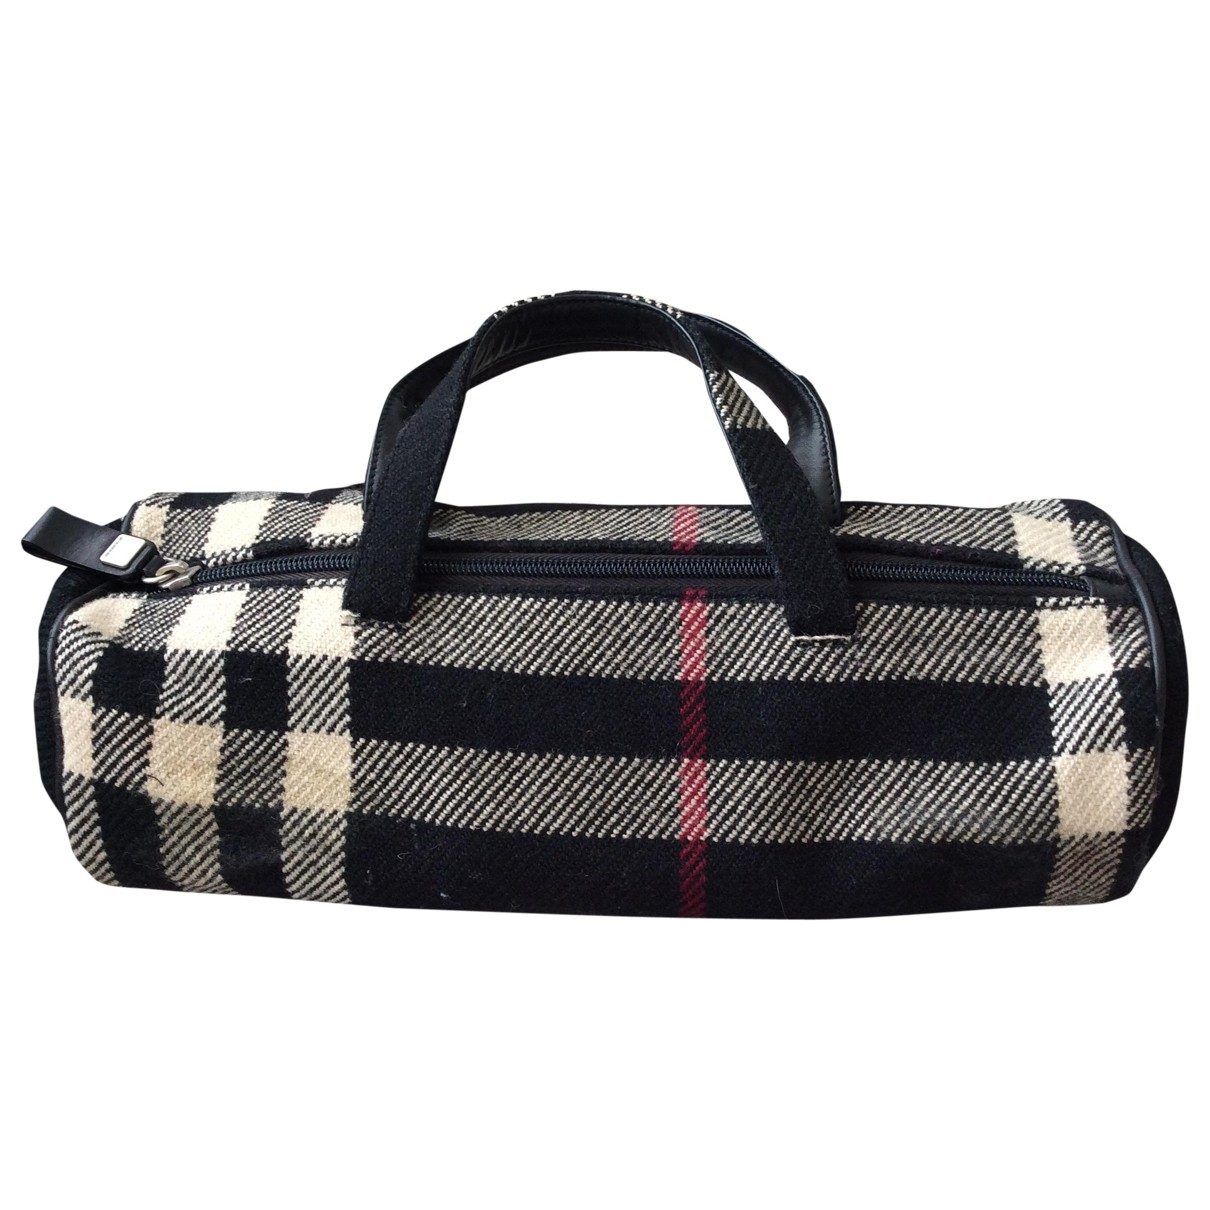 Burberry \N Multicolour Wool handbag for Women \N